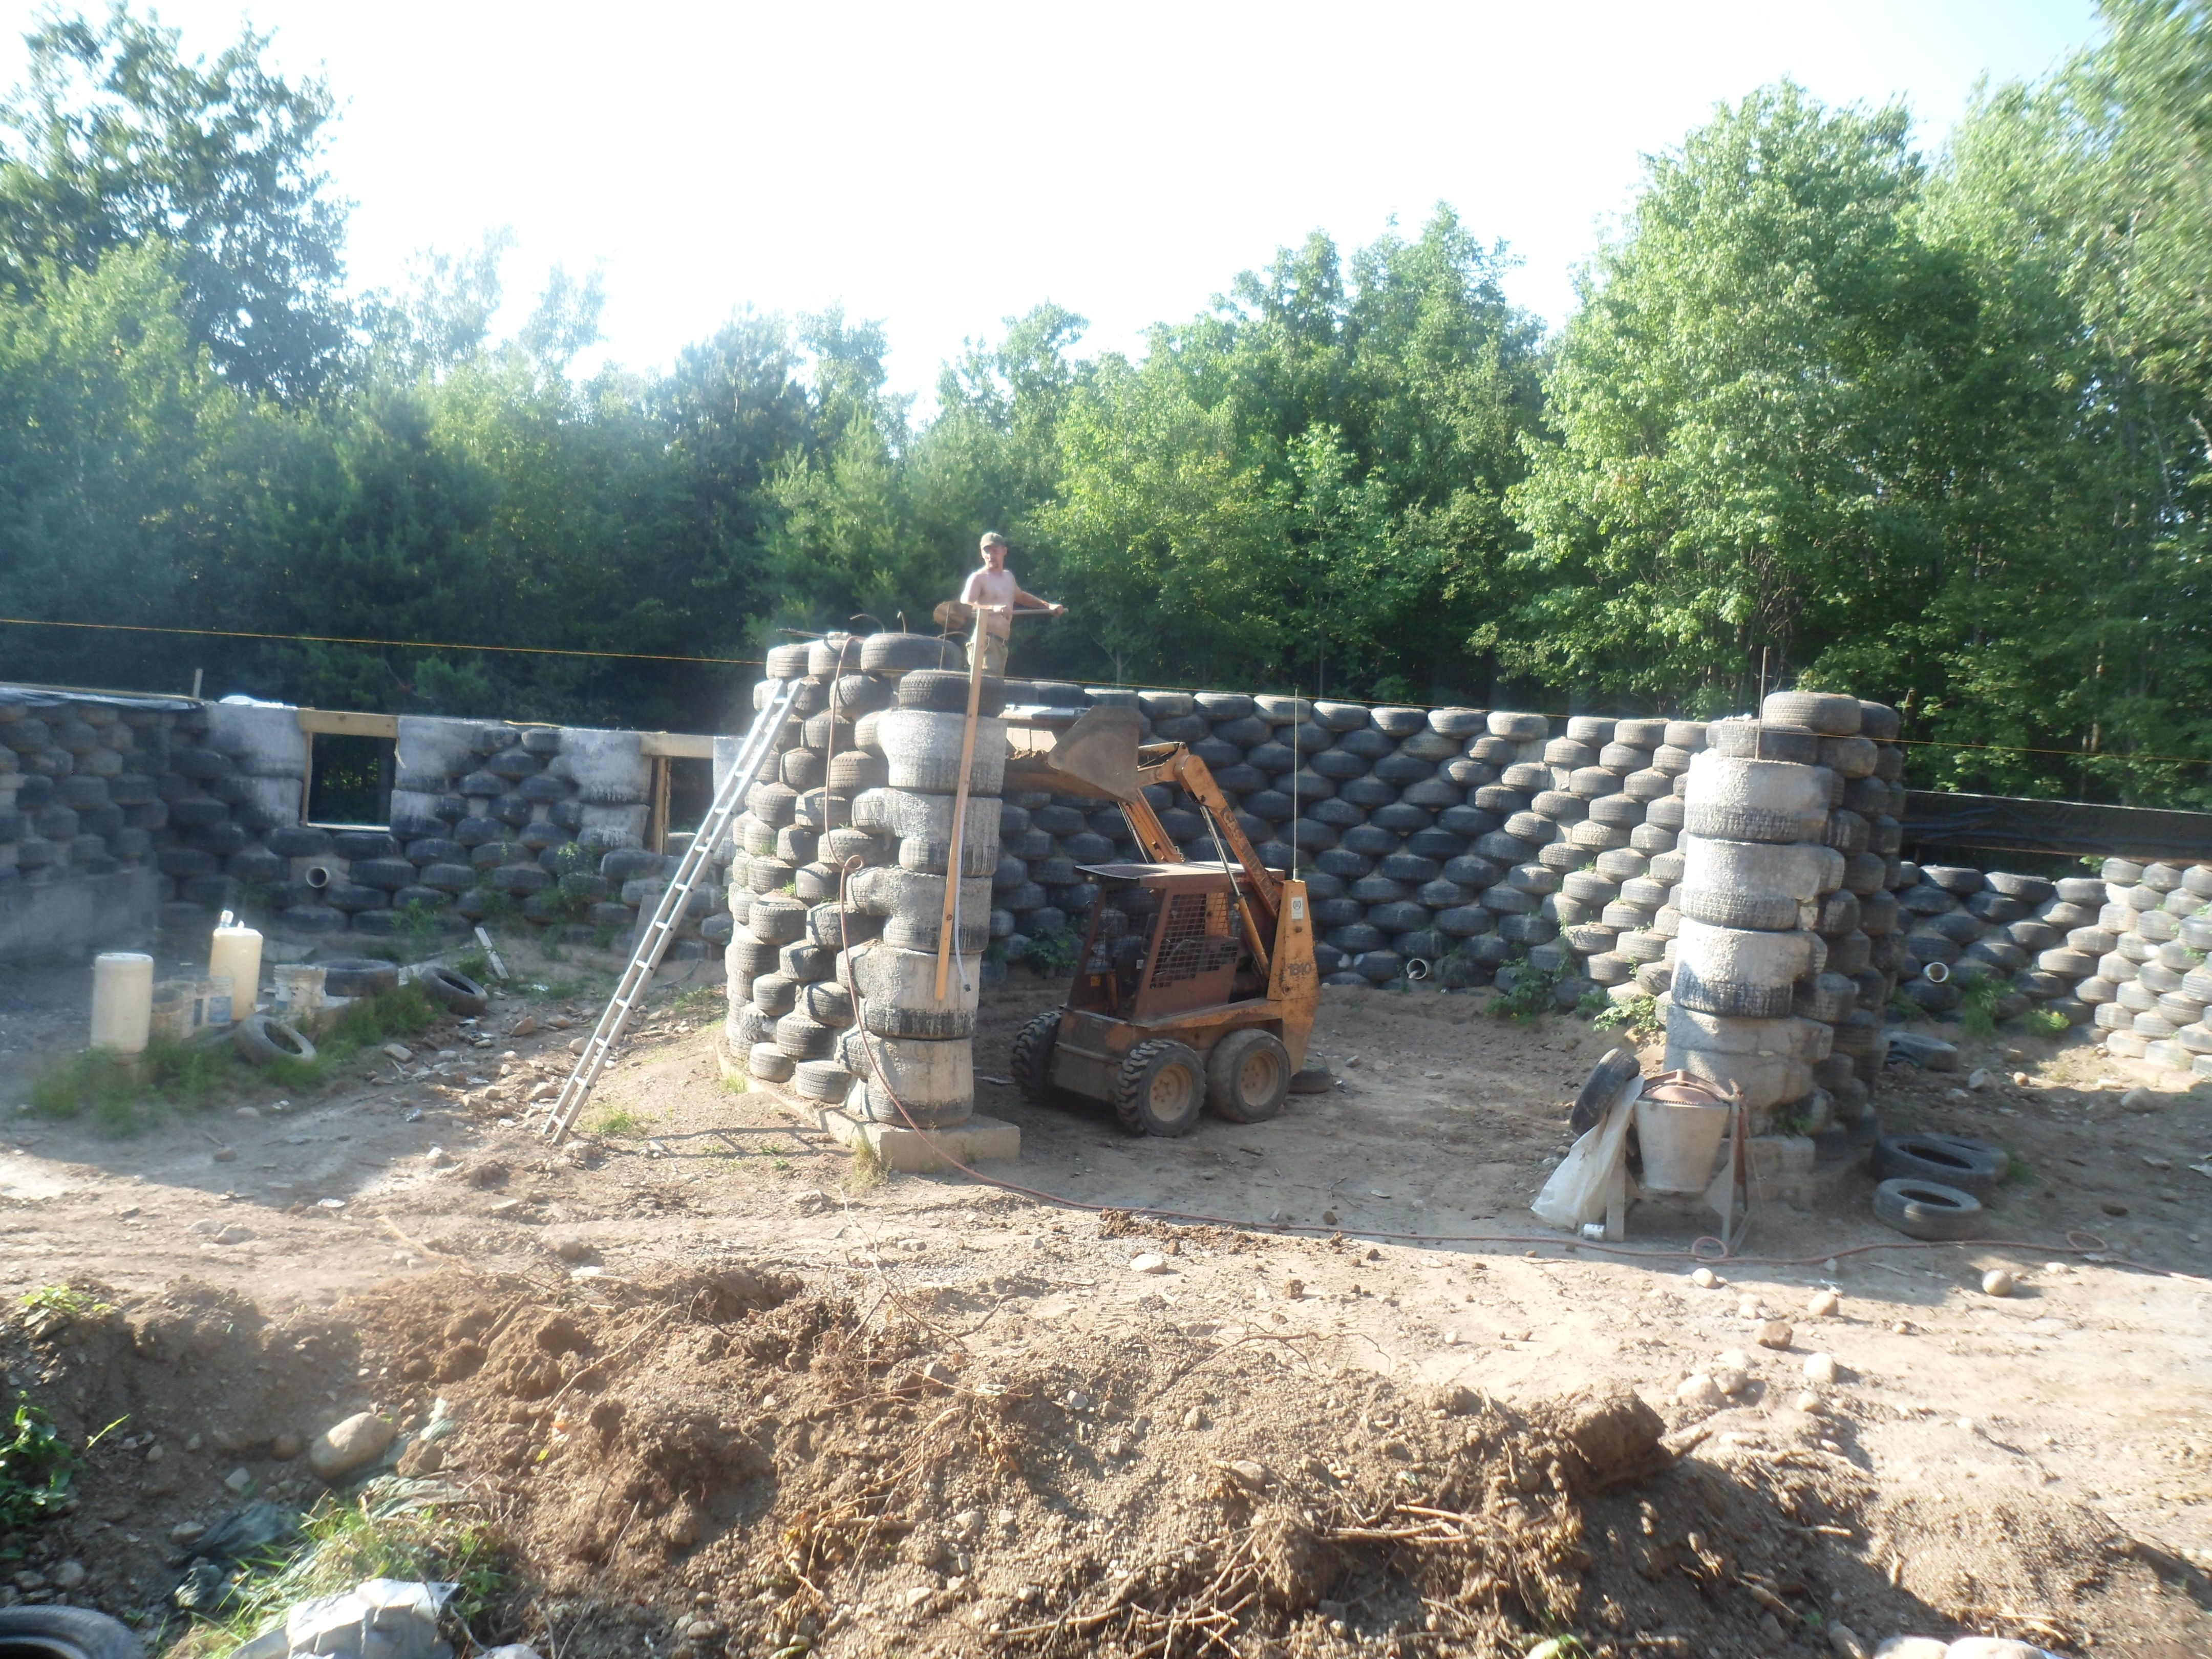 Earthship Plans Free | Cronk Earthship (tire house), rammed ... on earthen homes plans, quonset hut homes plans, earth berm home plans, straw bale house plans, compressed earth block house plans, earth oven plans, tire houses plans, large rambler house plans, earth home floor plans, rammed tire building, partial earth contact home plans,